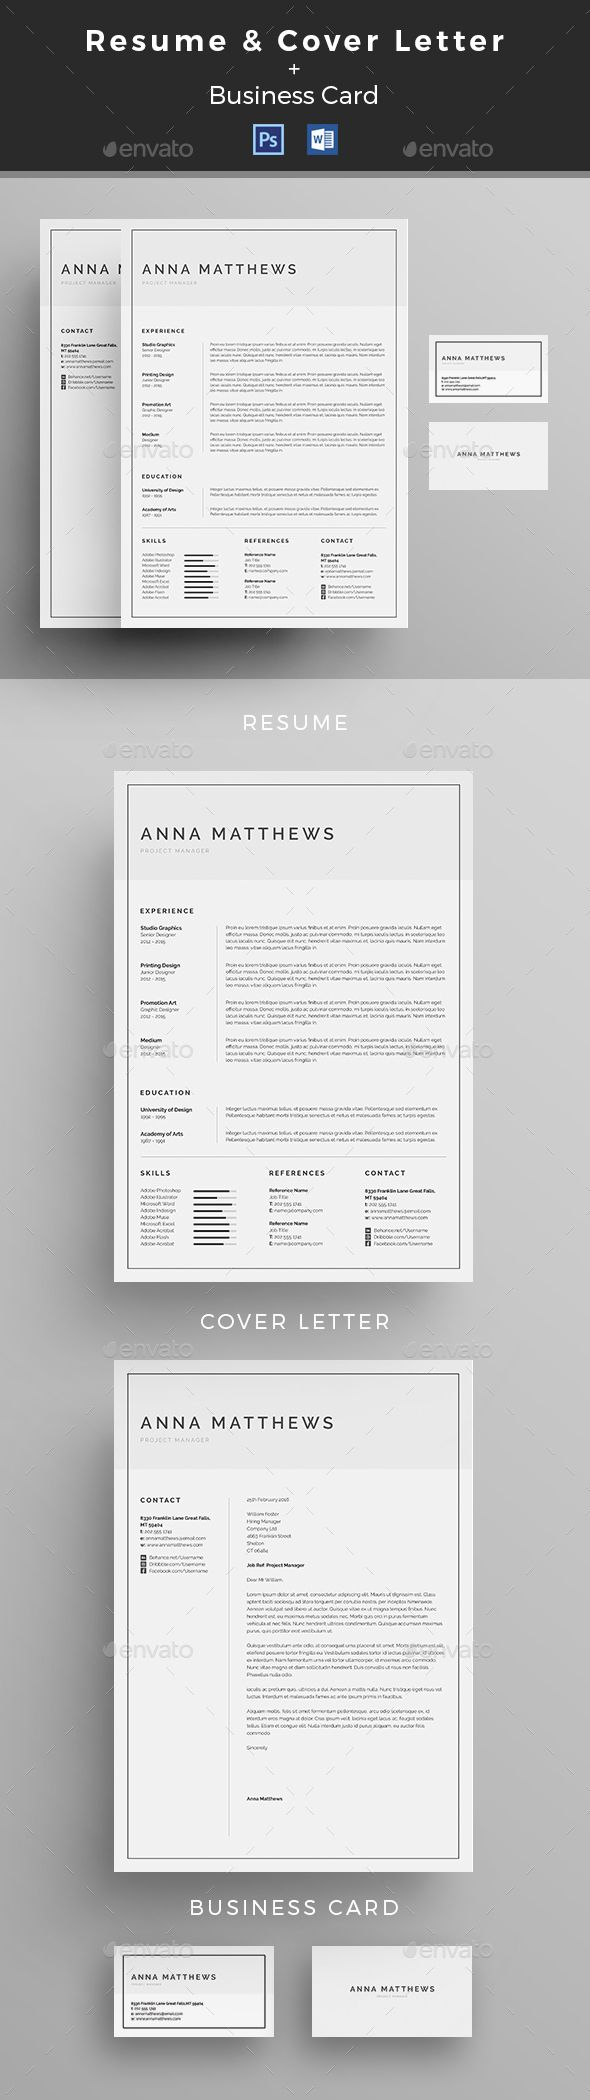 Preferred Resume Group Brilliant 36 Best Best Resume 2016 Images On Pinterest  Resume Templates .